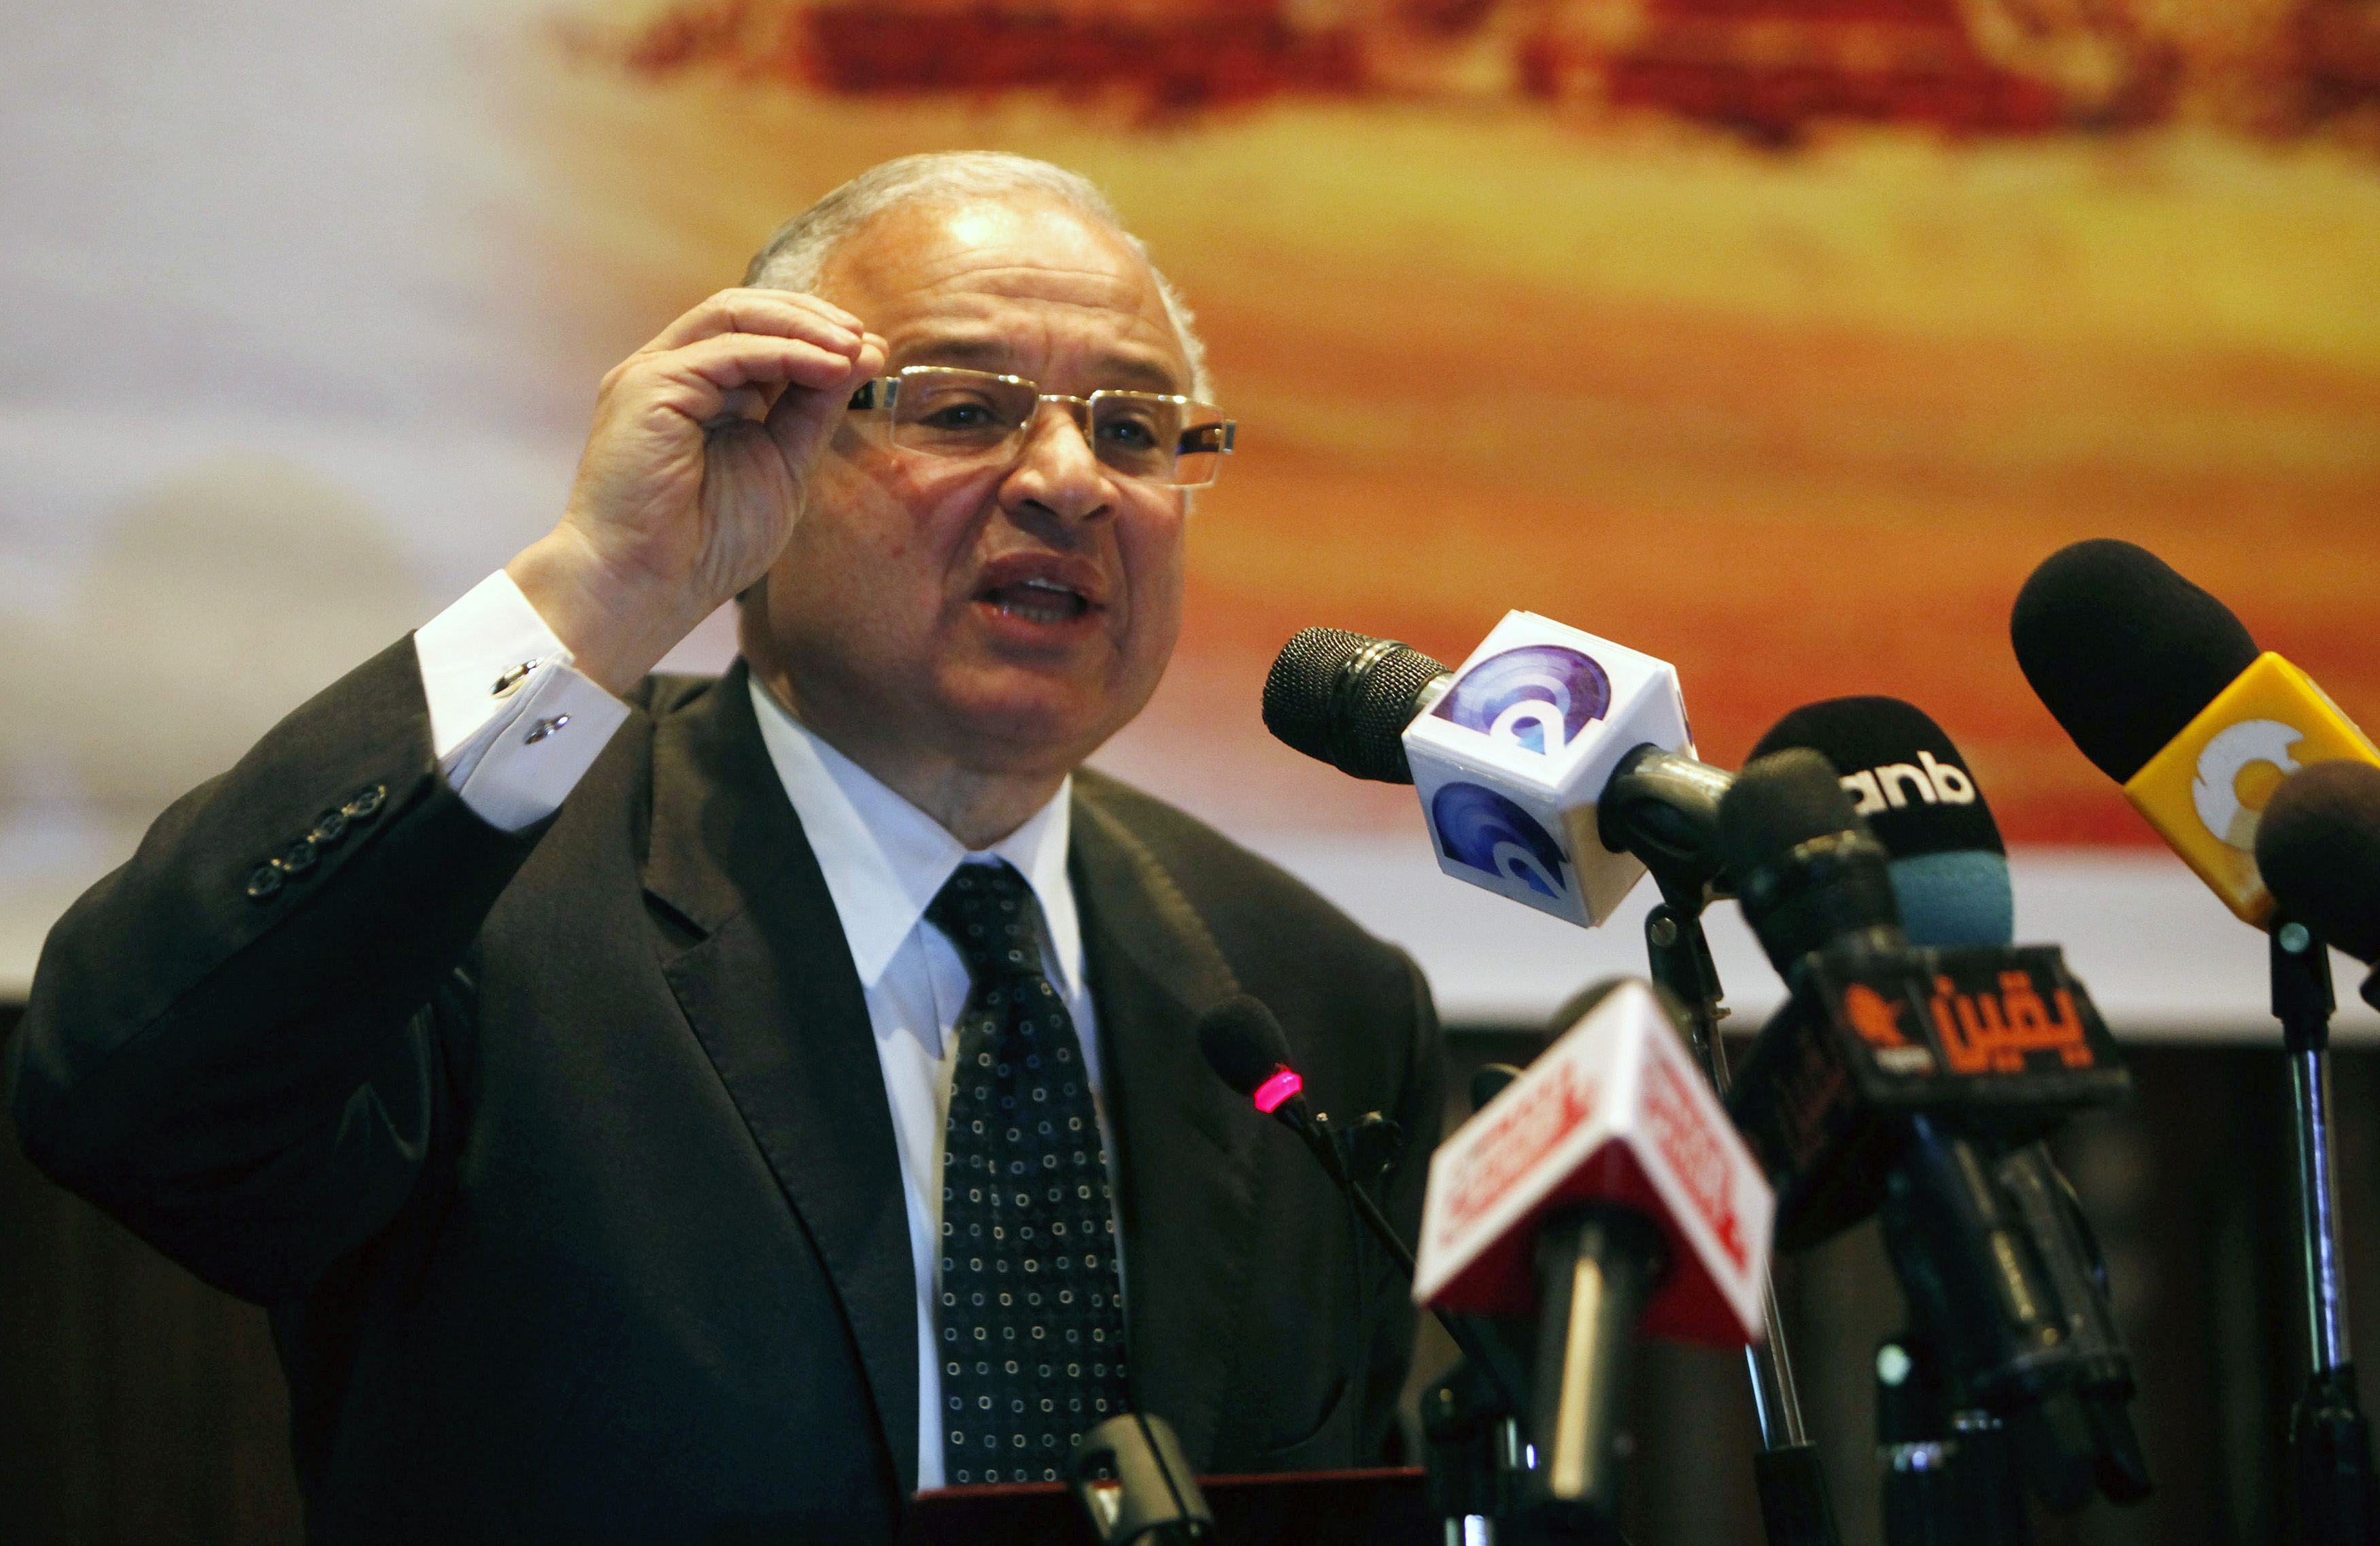 Egypt's Tourism Minister Hisham Zazou speaks during a press conference in Cairo, February 1, 2015. REUTERS/Mohamed Abd El Ghany